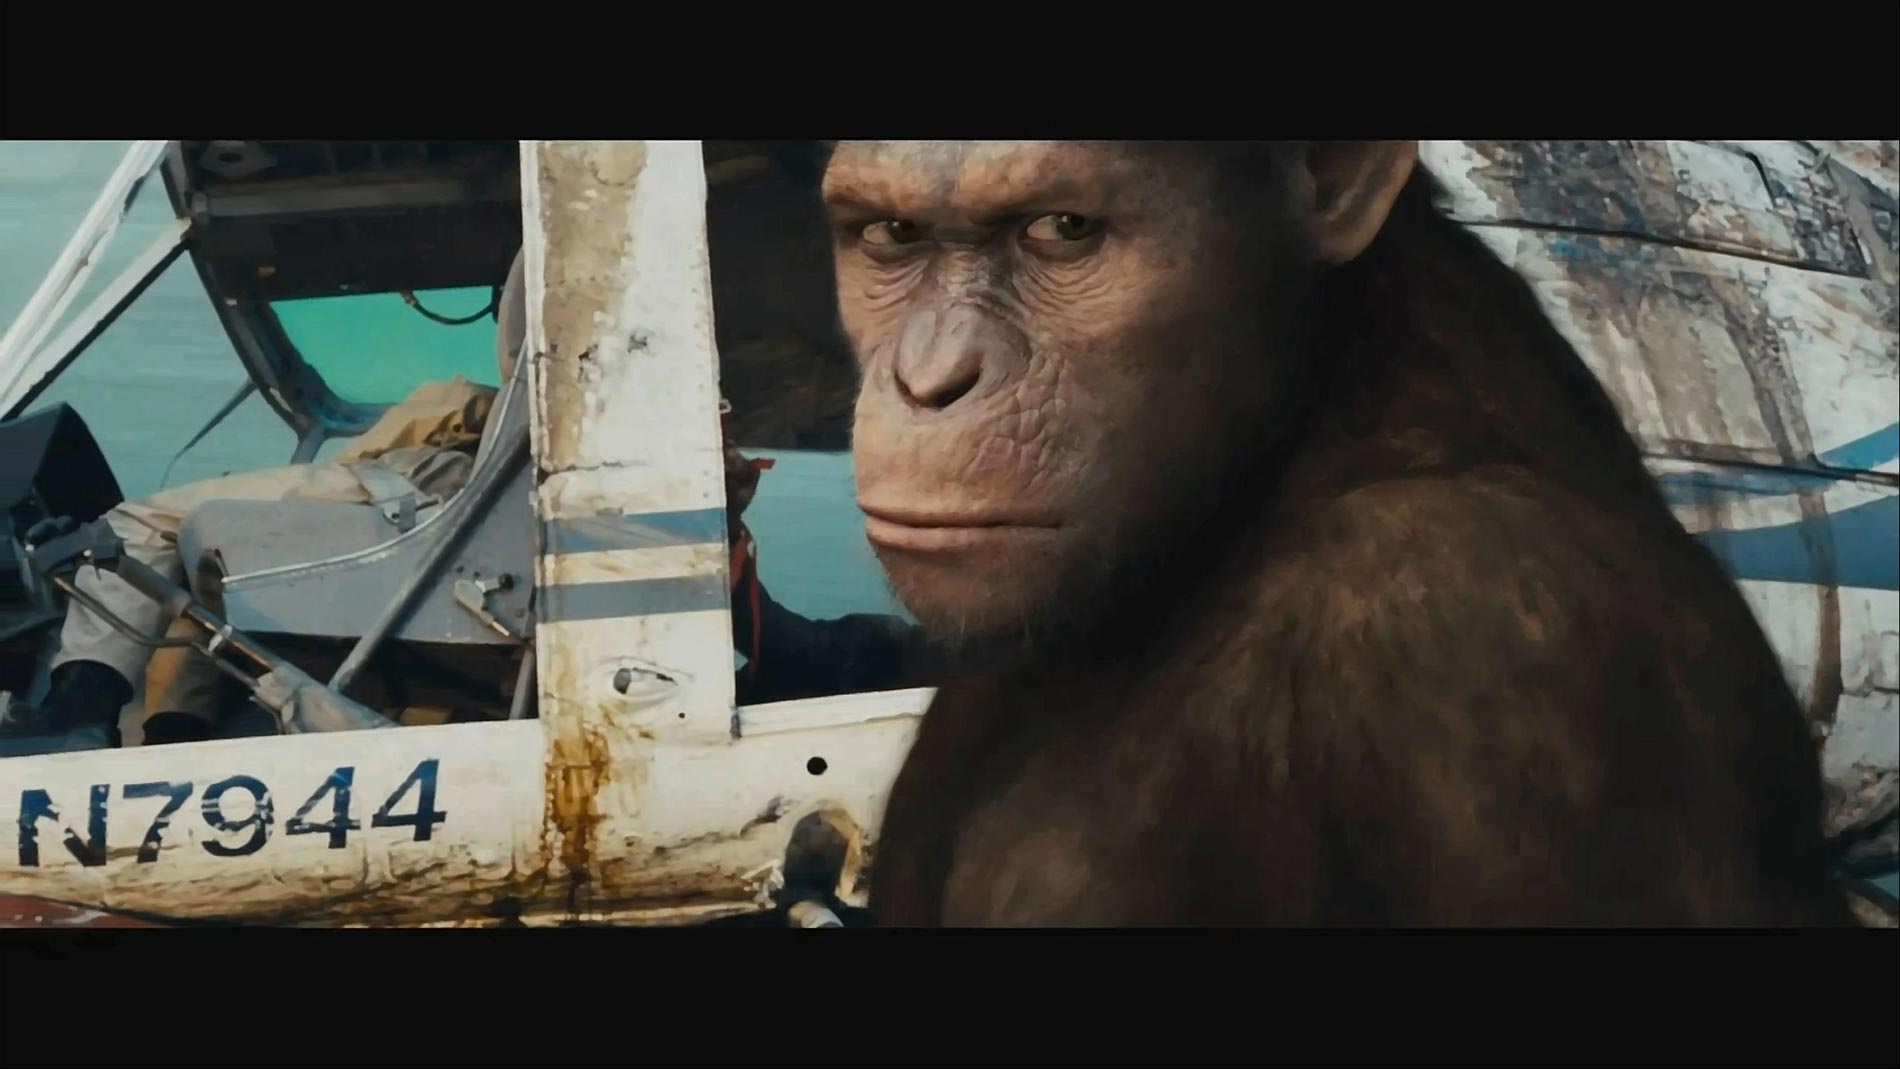 Exclusive_Rise_of_the_Planet_of_the_Apes_-_Comic-Con-2500_20110722091604